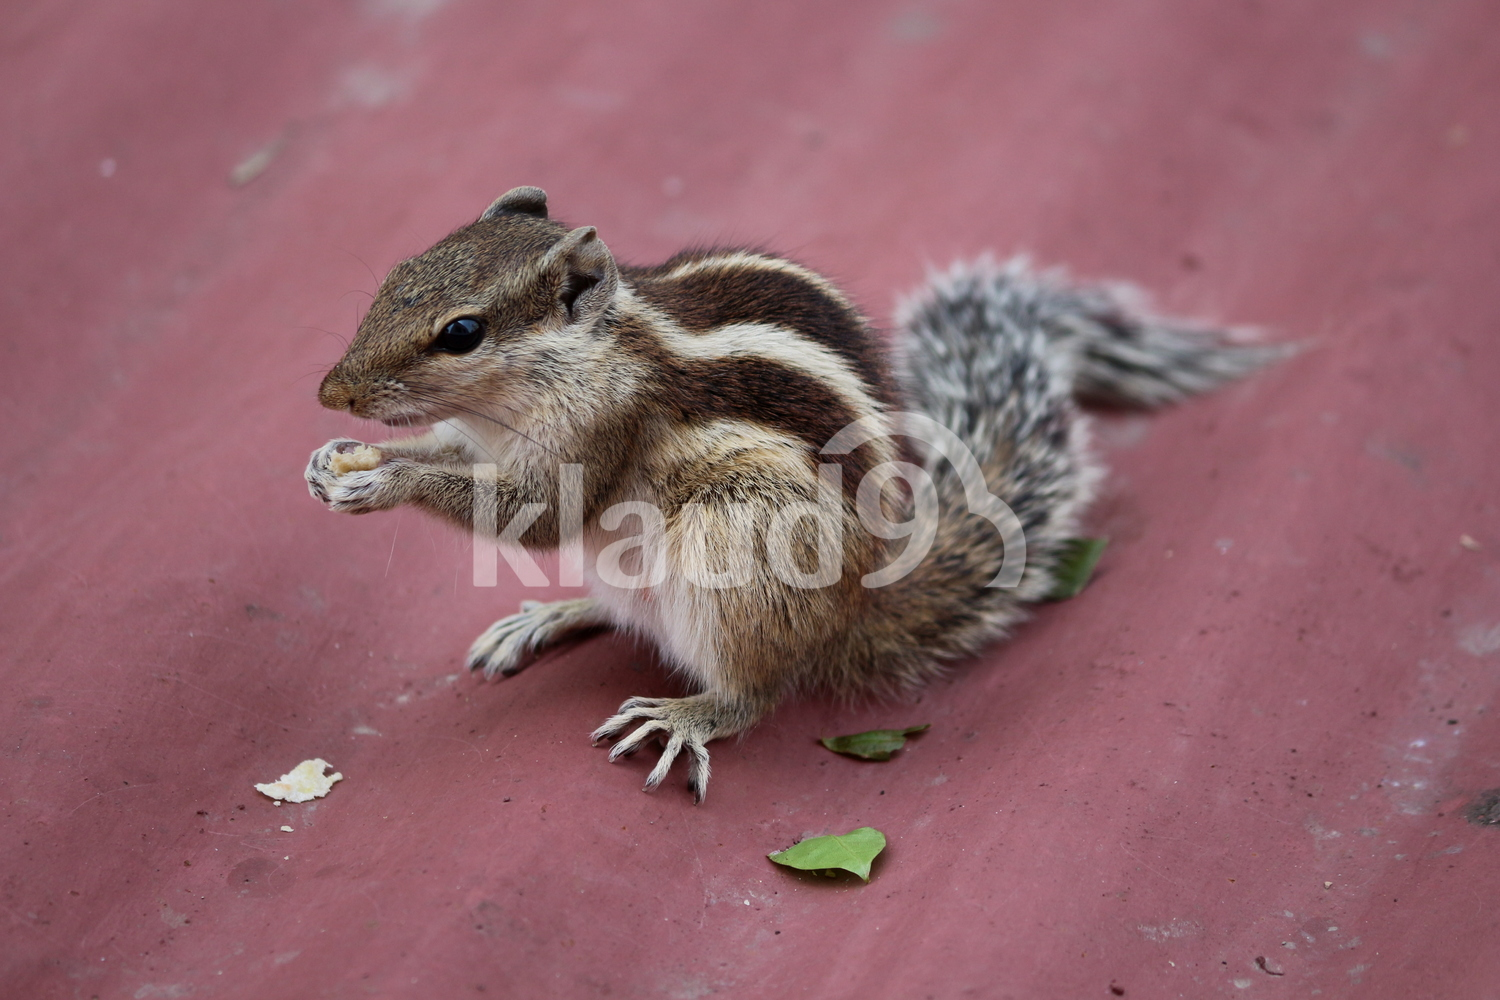 ID: Indian Palm Squirrel